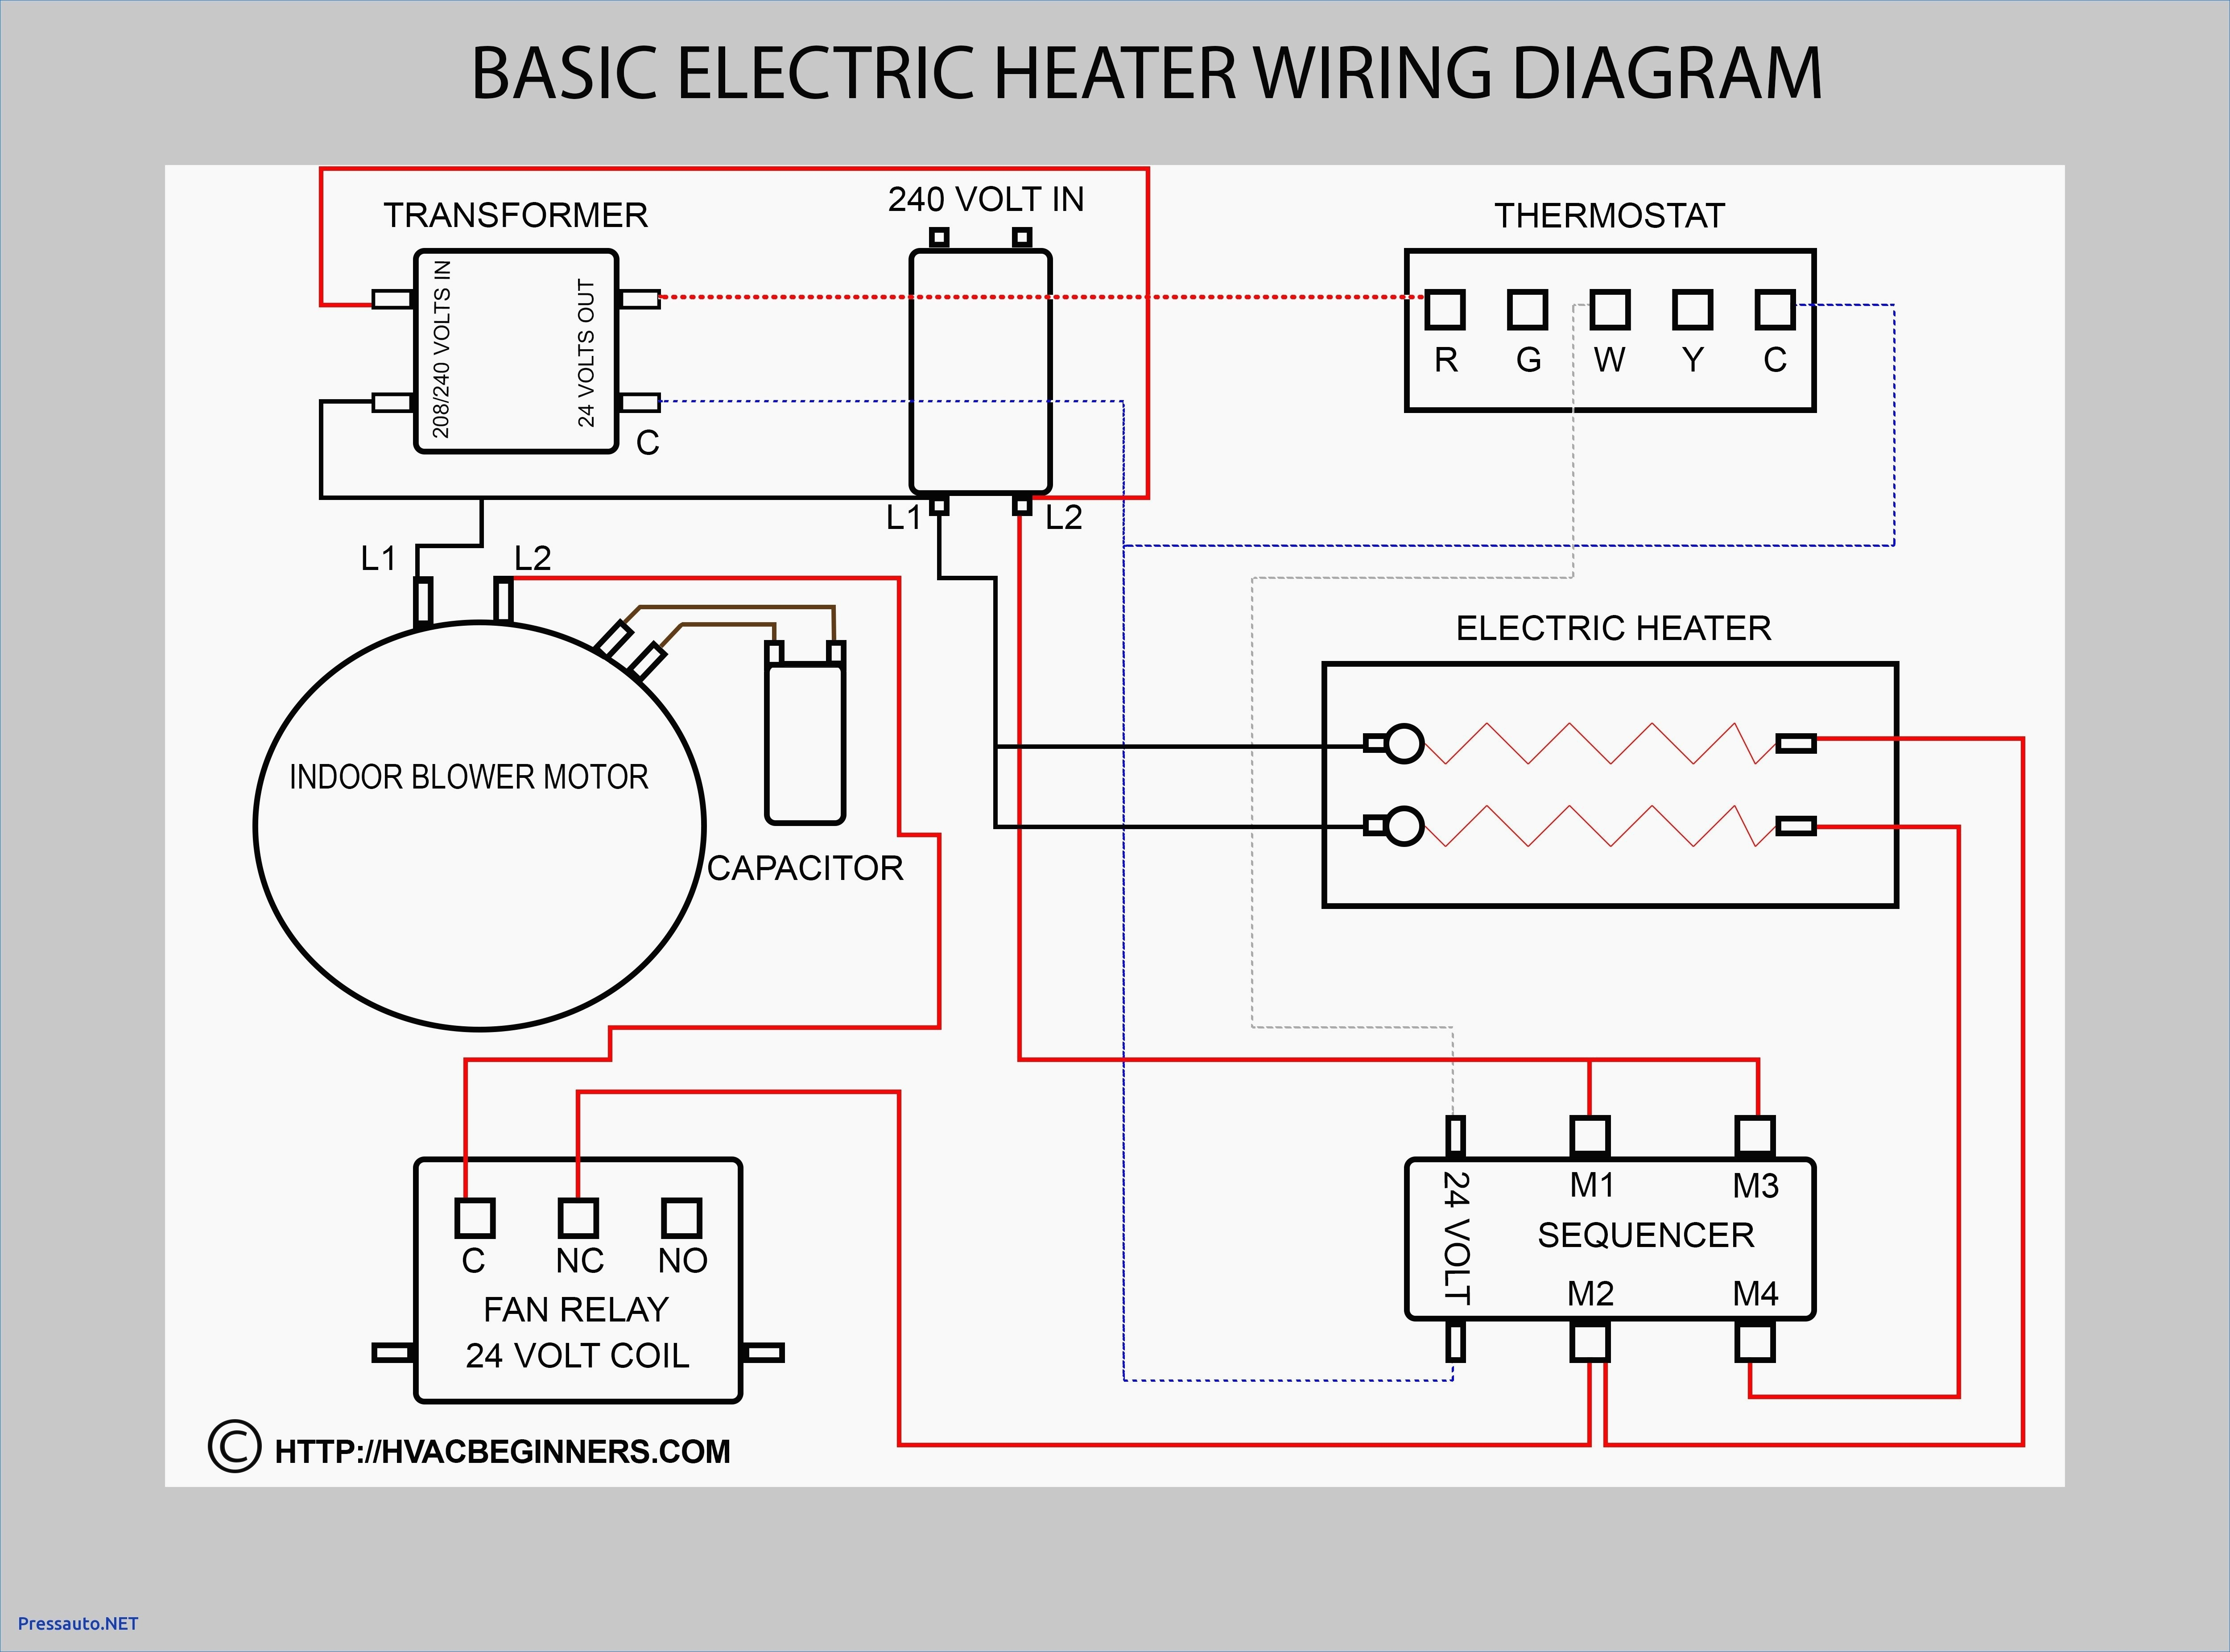 ooma wiring diagram Collection-heat pump wiring diagram Collection Wiring Diagrams For Central Heating Save Wiring Diagram For Heating DOWNLOAD Wiring Diagram 11-q